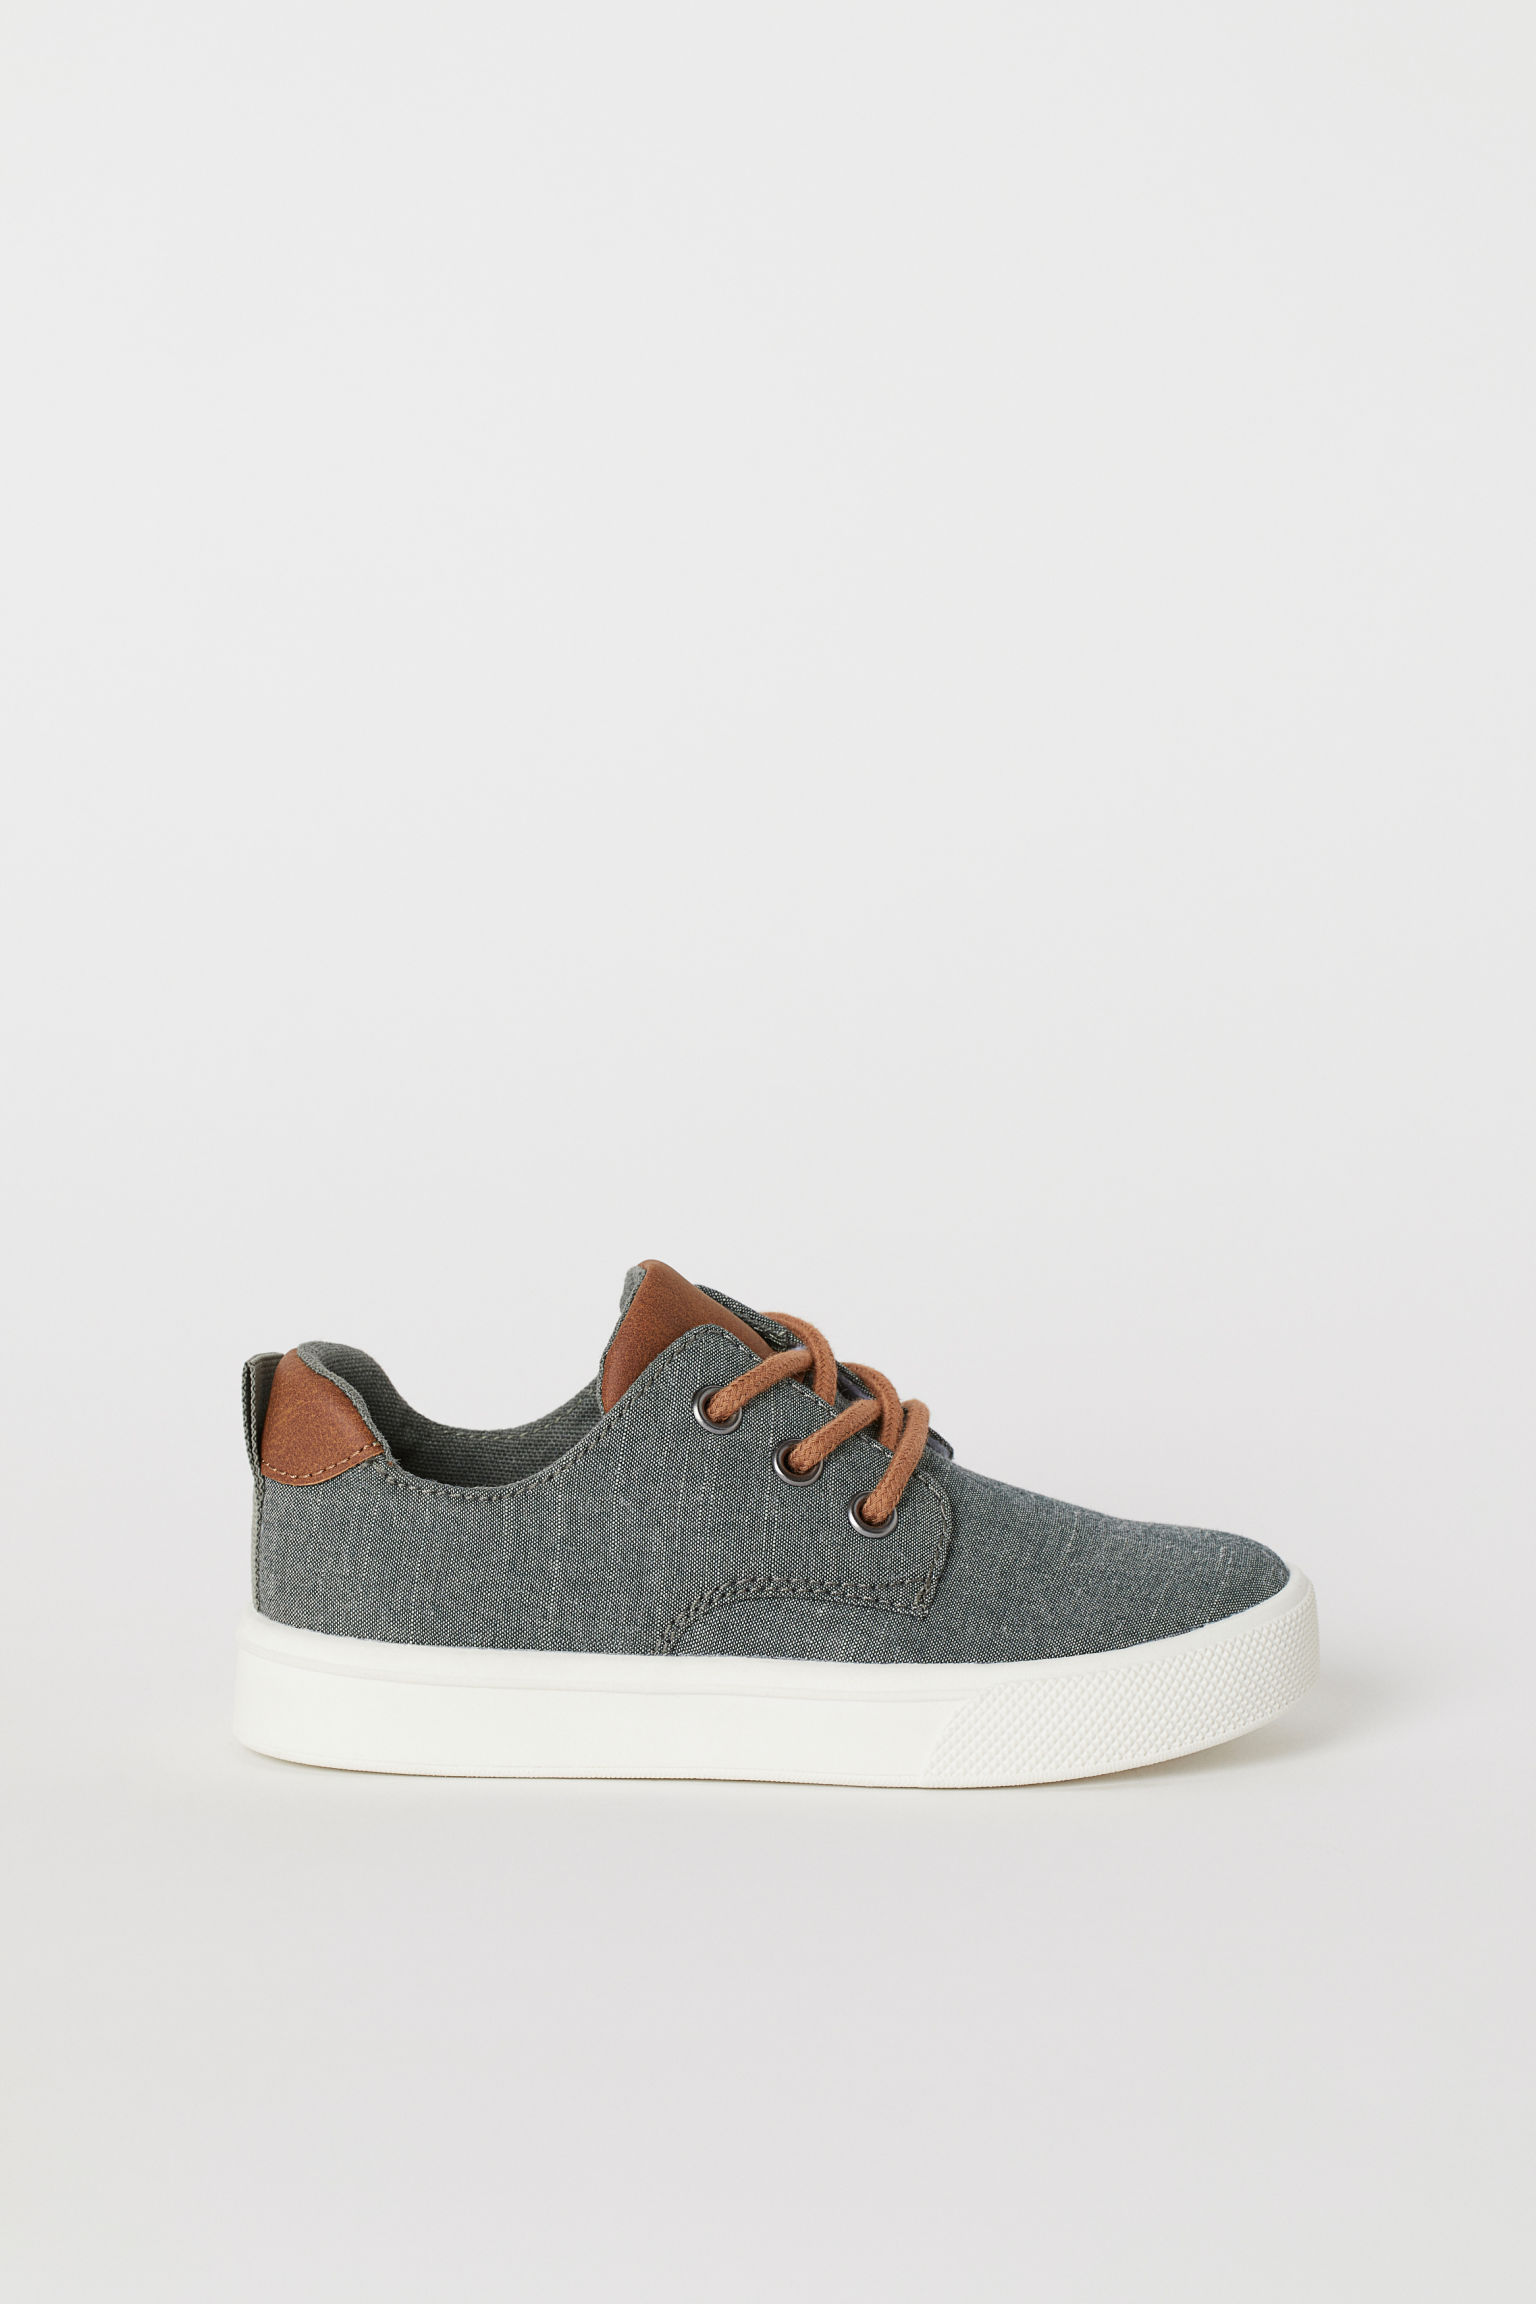 H&M Chambray Sneakers